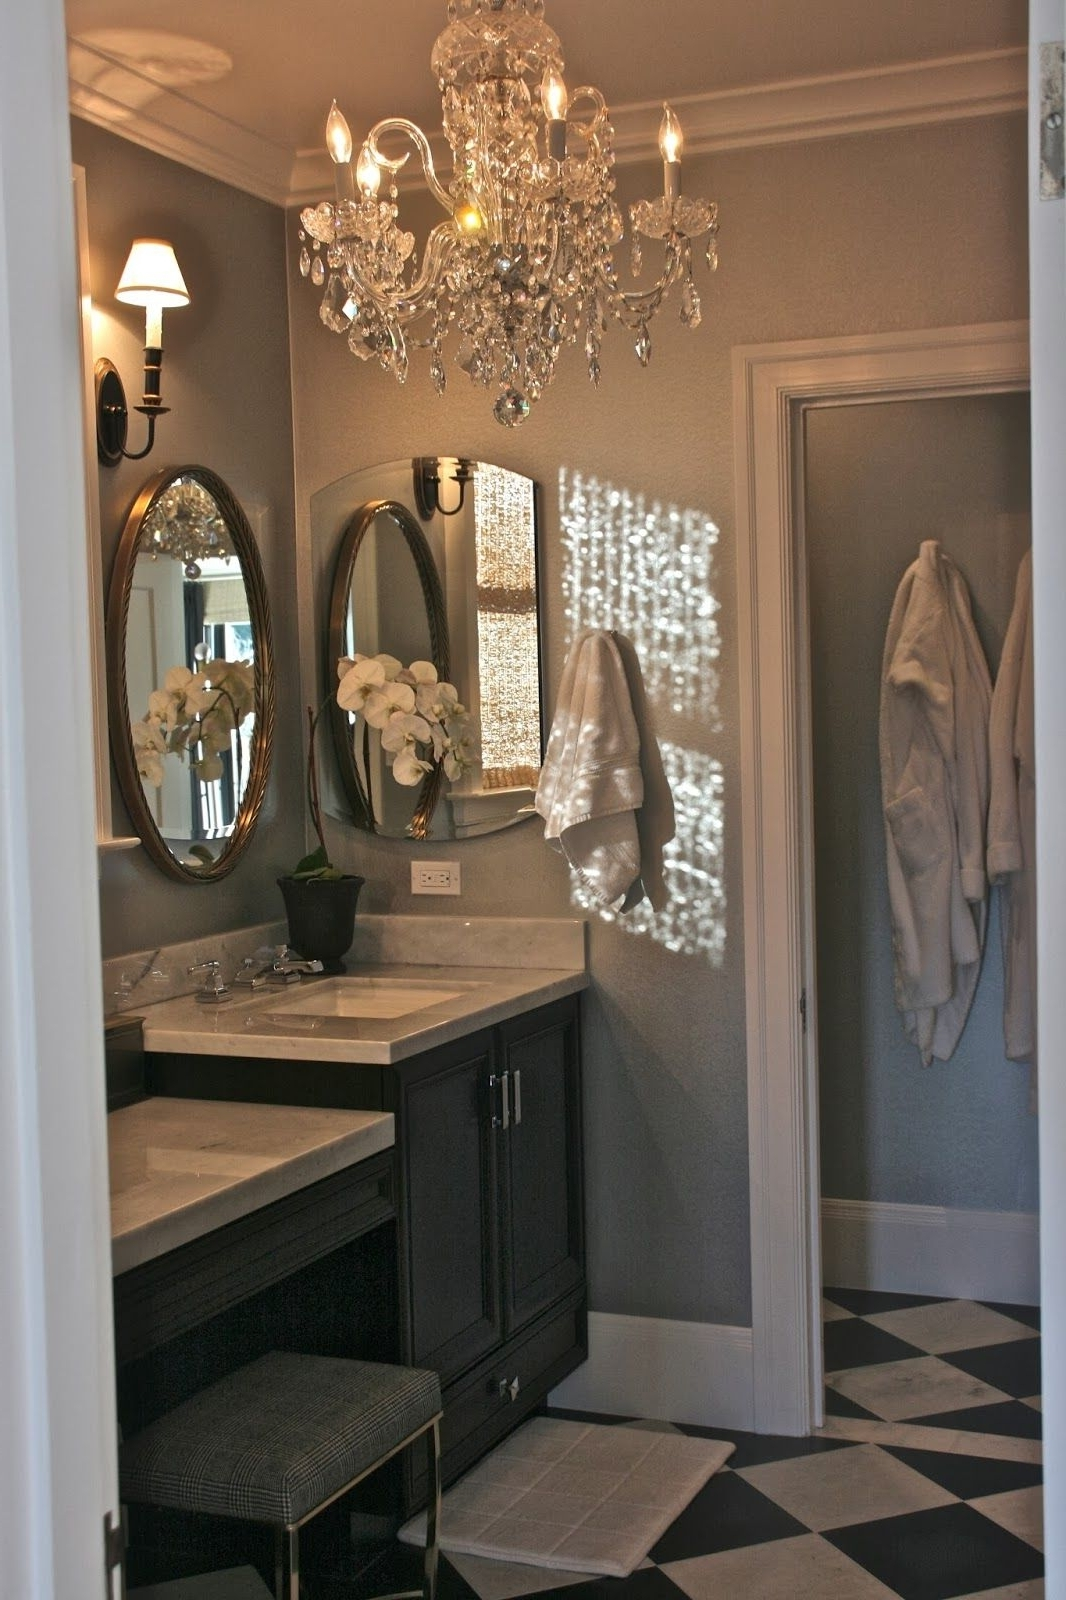 2018 Latest Chandeliers For The Bathroom